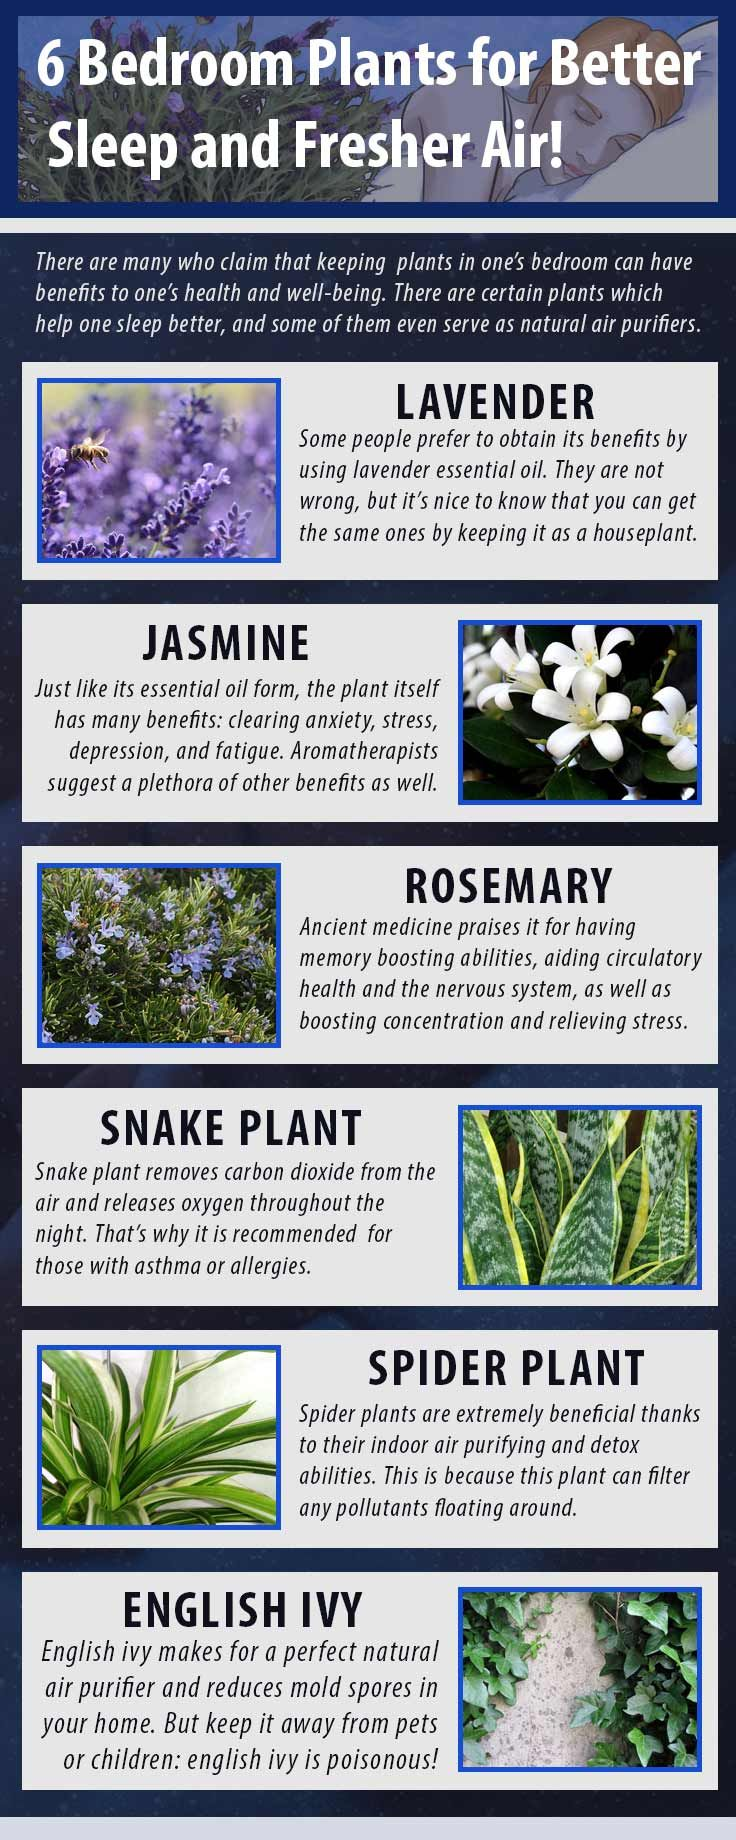 Pin By Eric Wohlt On House Plants And Gardening Plants Bedroom Plants Natural Air Purifier